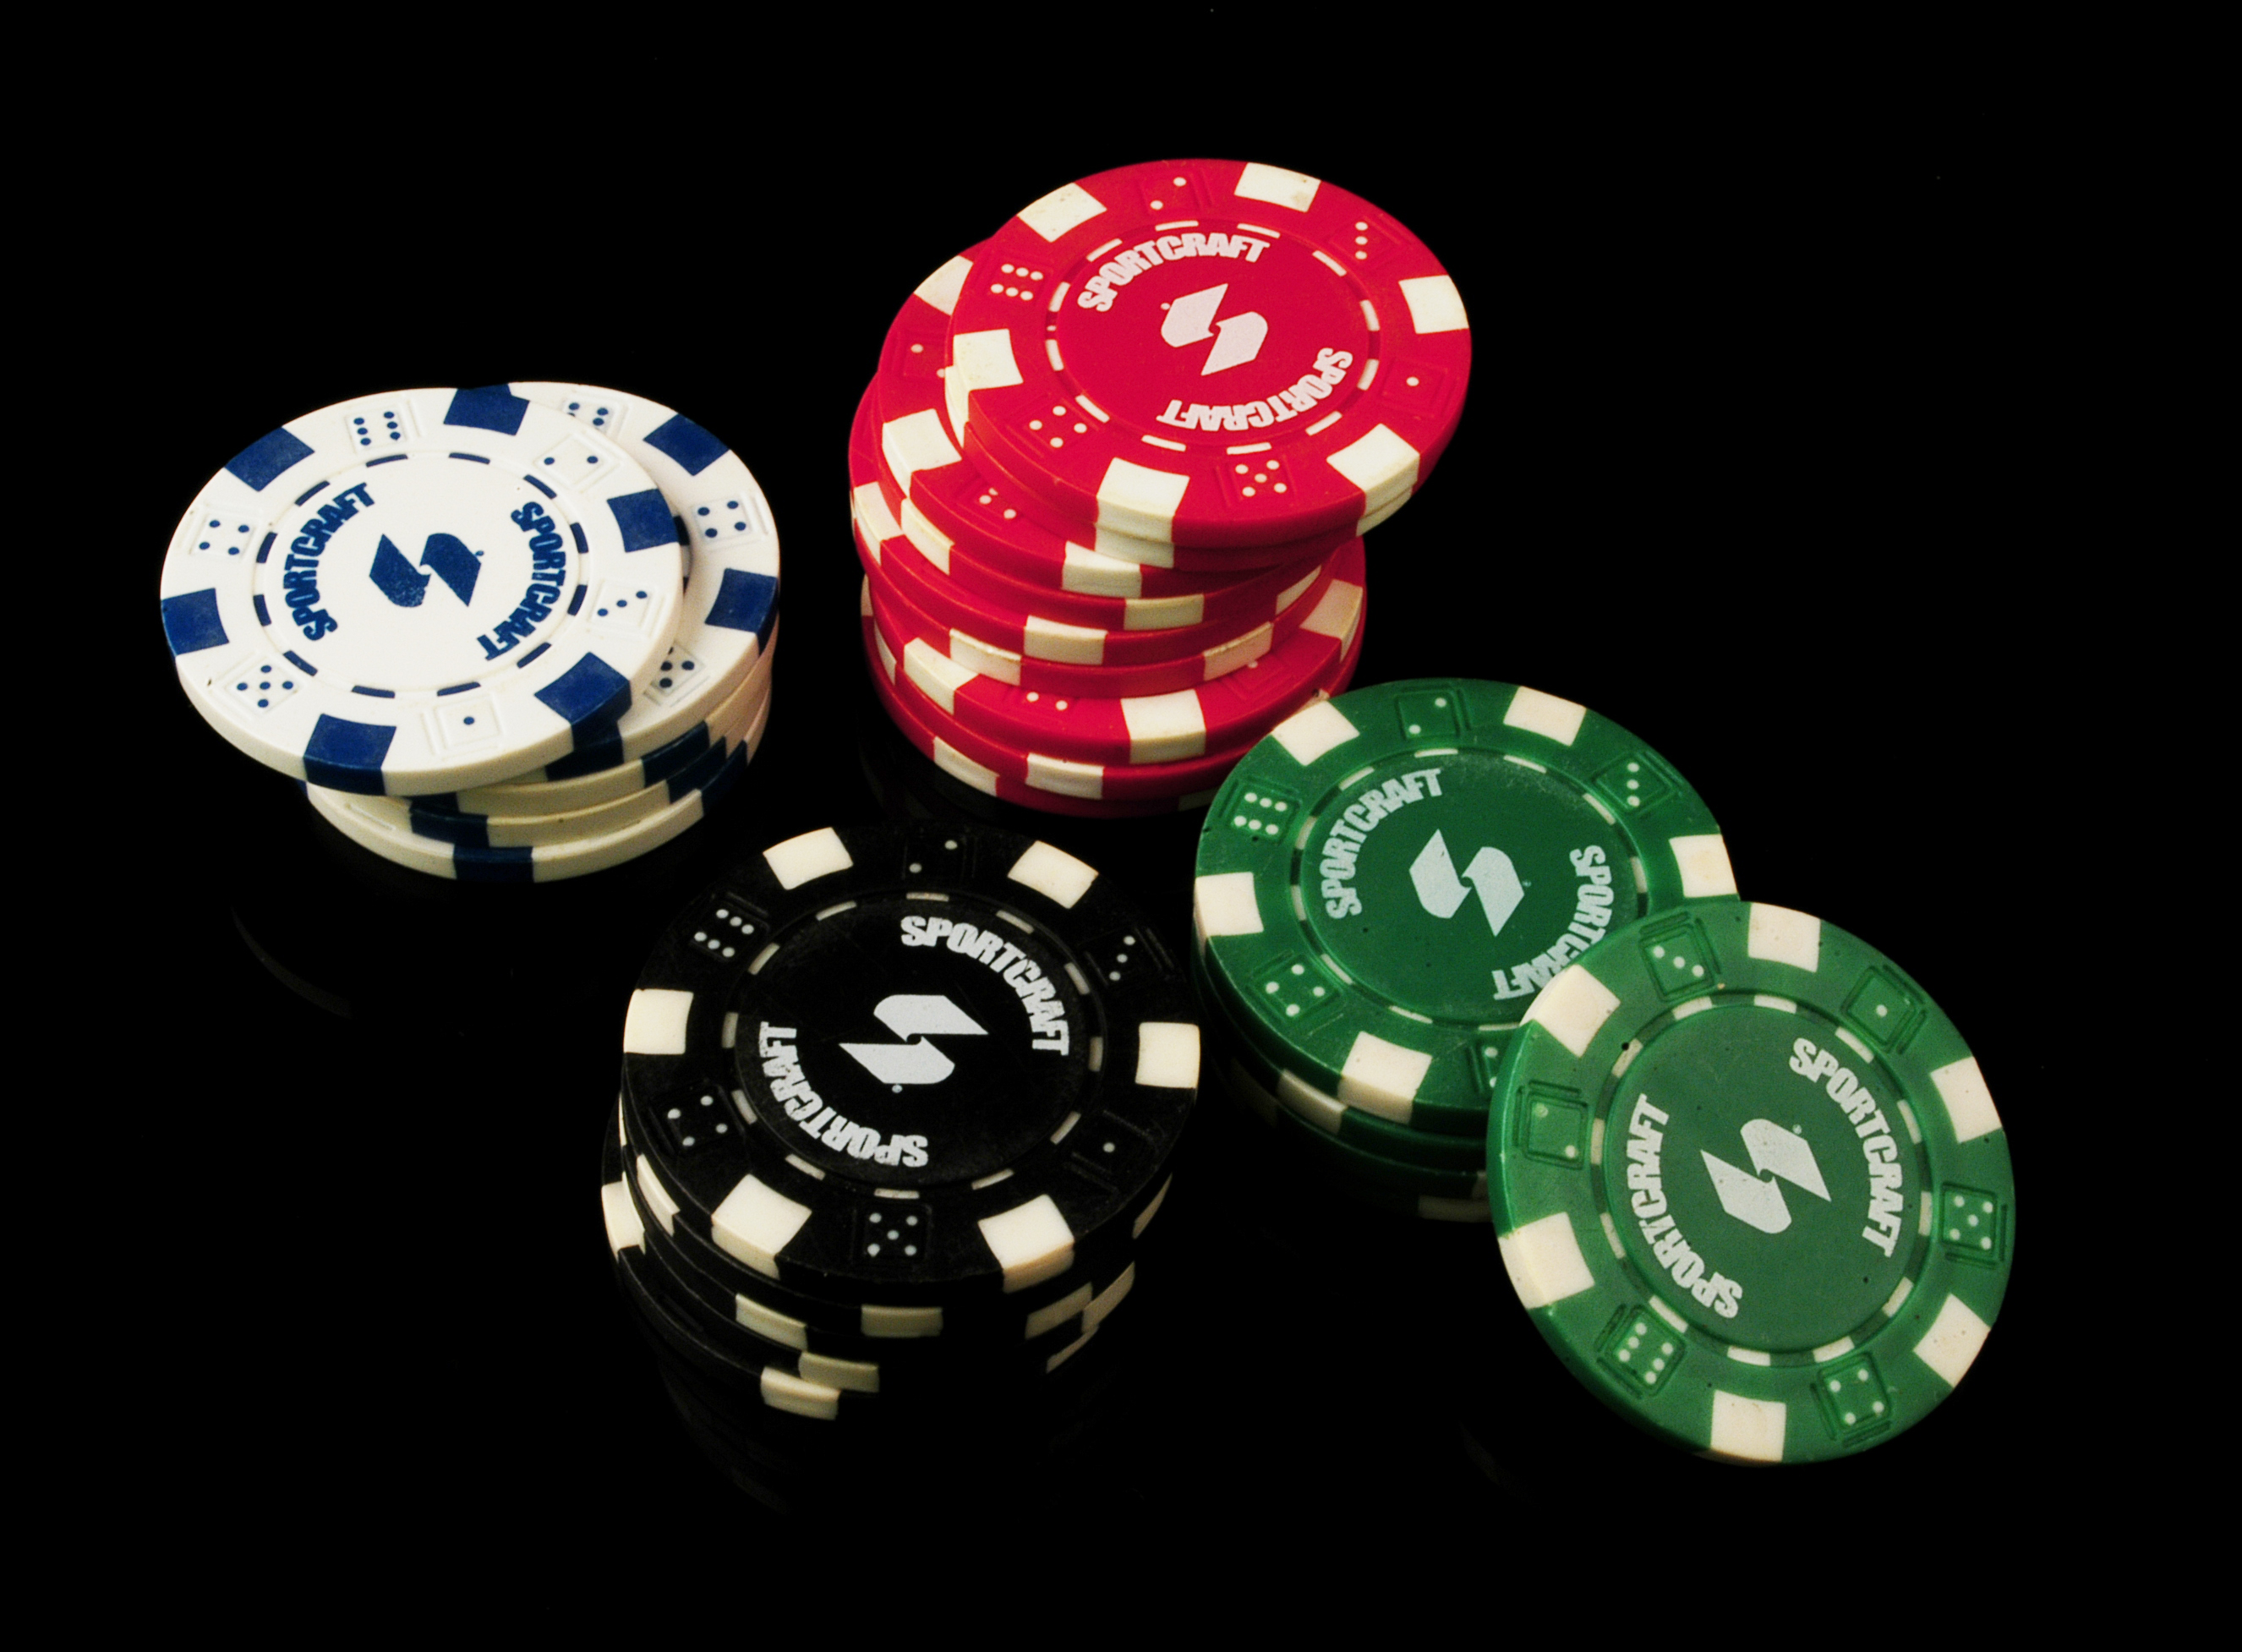 File:Poker Chips.jpg - Wikimedia Commons